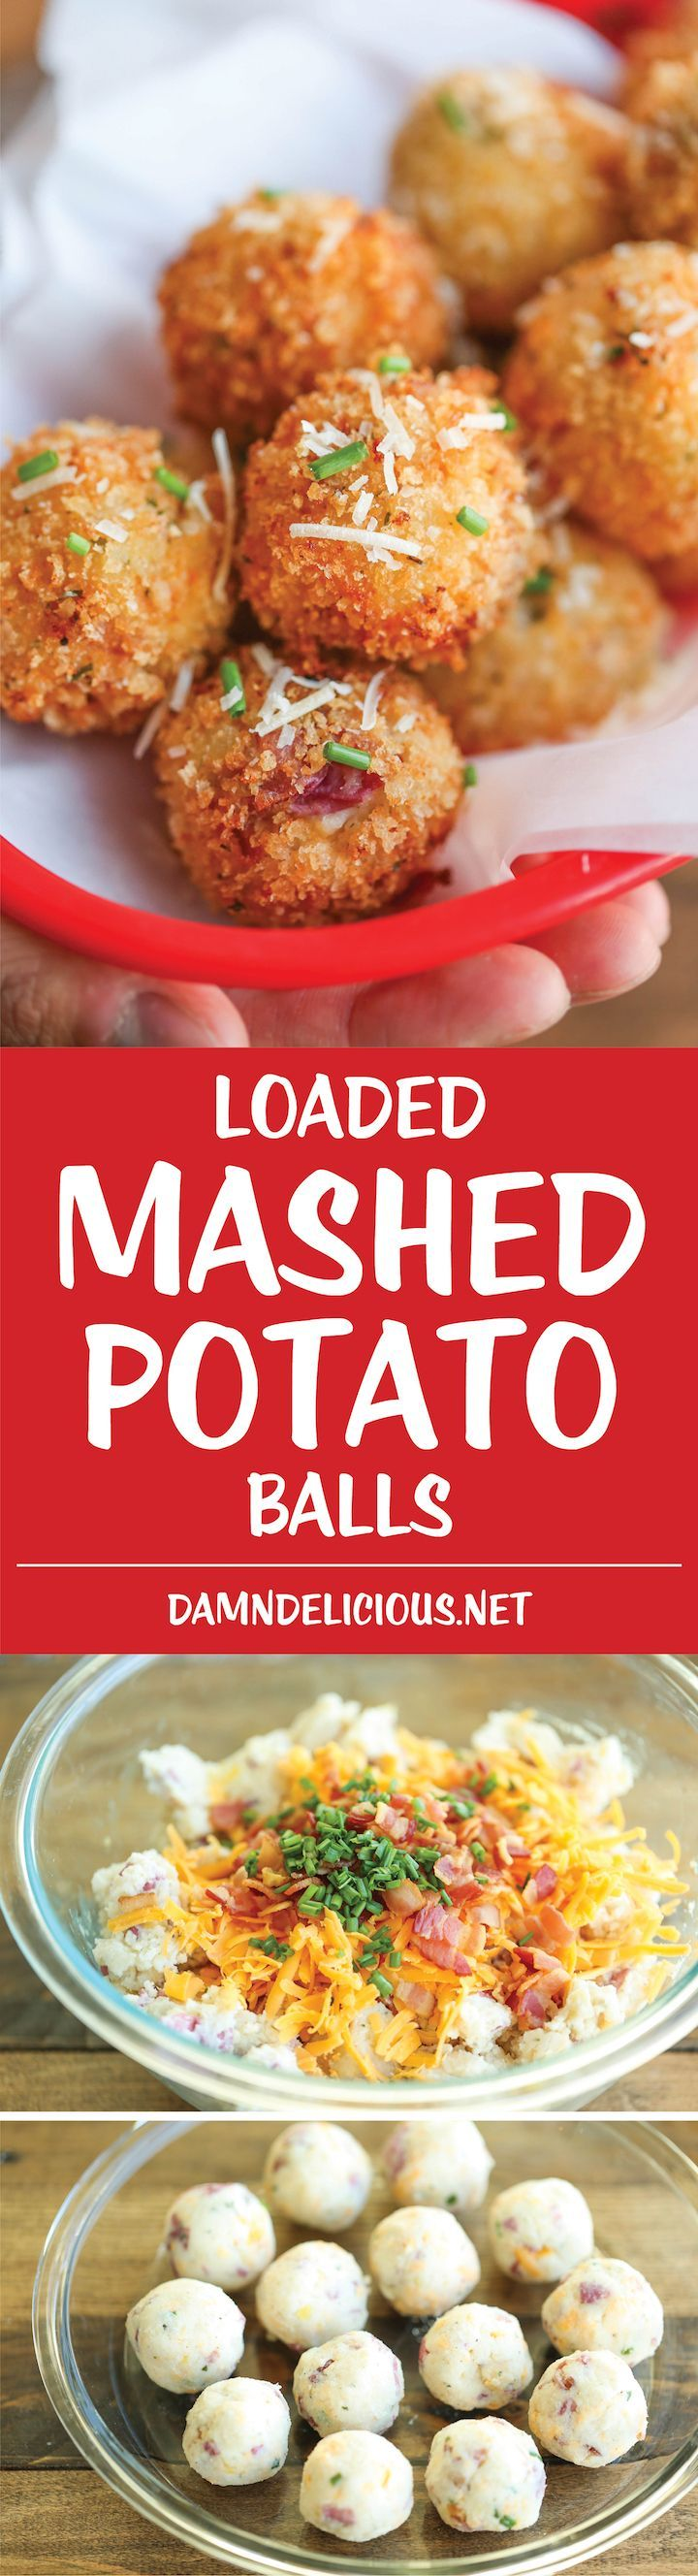 Loaded Mashed Potato Balls - What do you do with leftover mashed potatoes? Make melt-in-your-mouth, crisp yet creamy mashed potato balls!